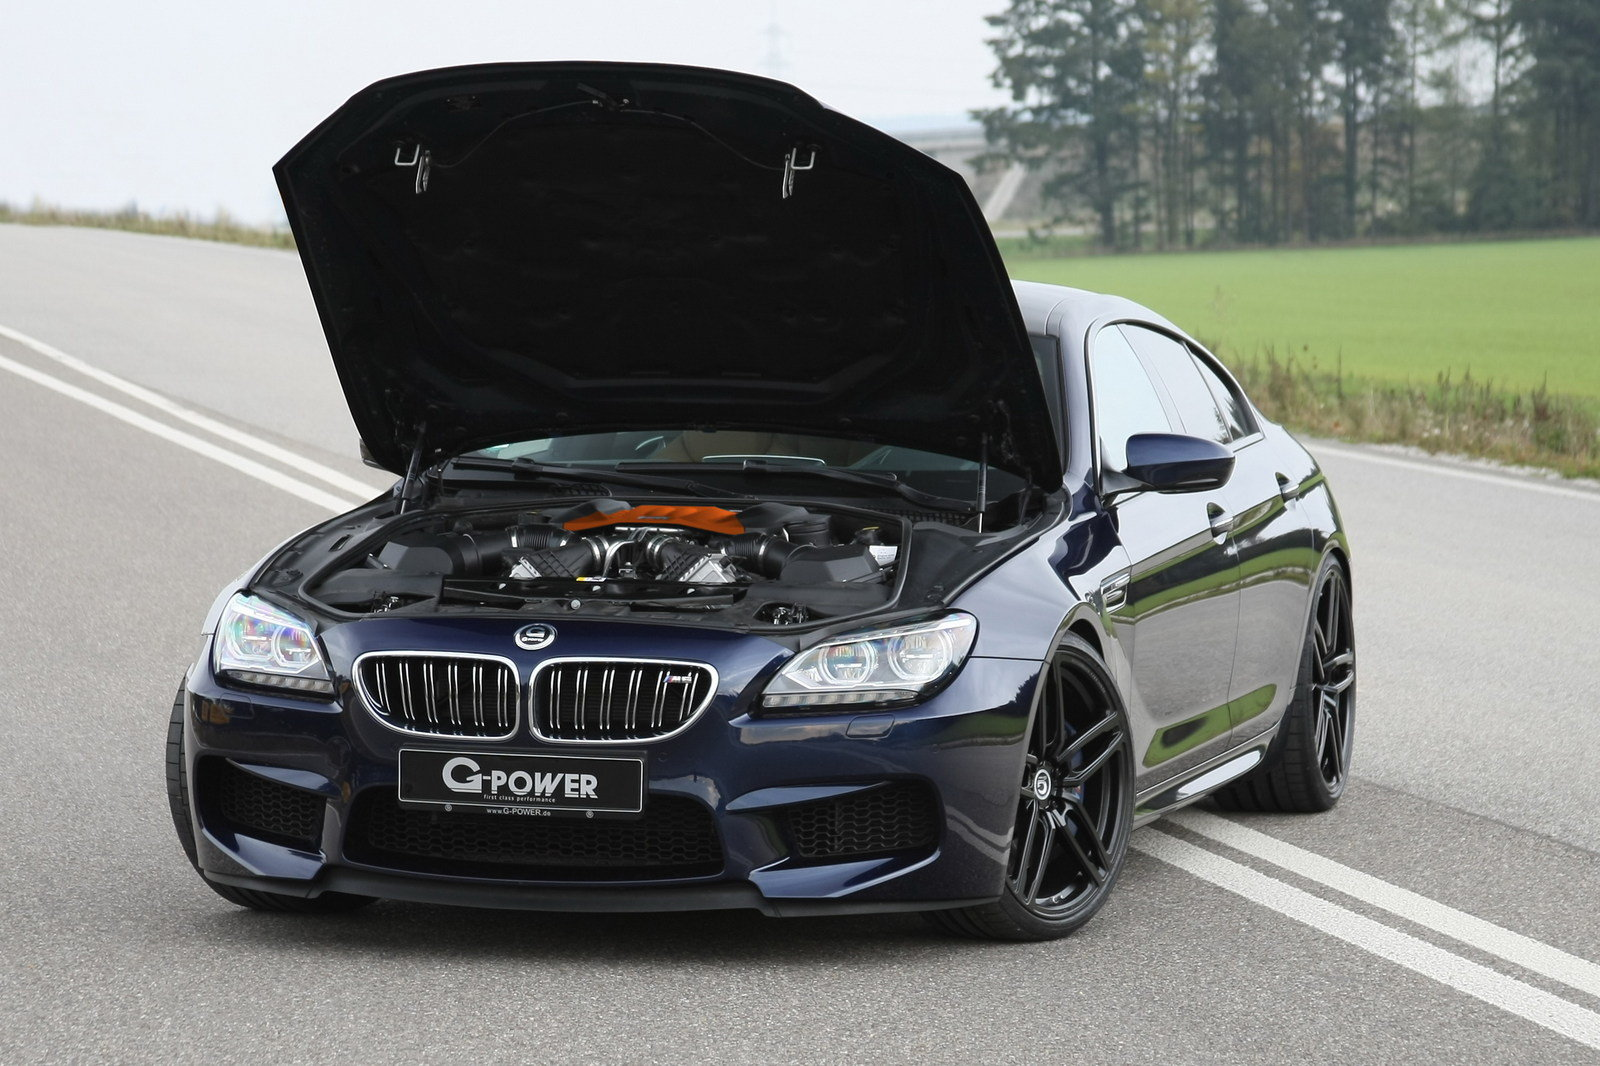 2016 Bmw M6 Gran Coupe #7